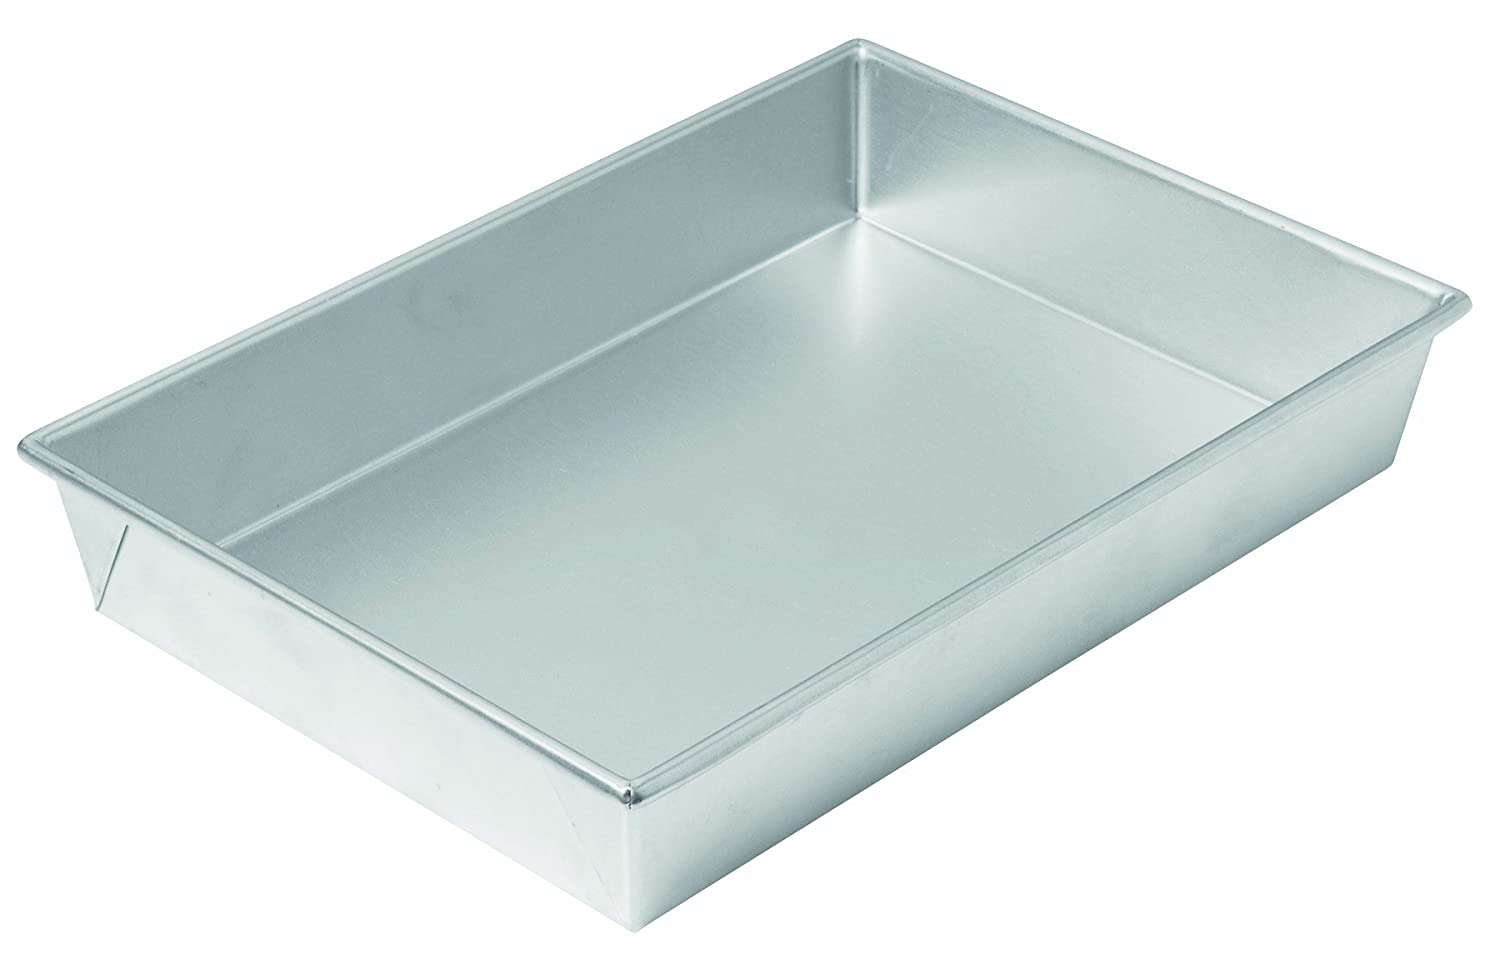 Chicago Metallic Commercial II Traditional Uncoated Bake N' Roast Pan, 13 by 9 by 2-1/4-Inch 49945